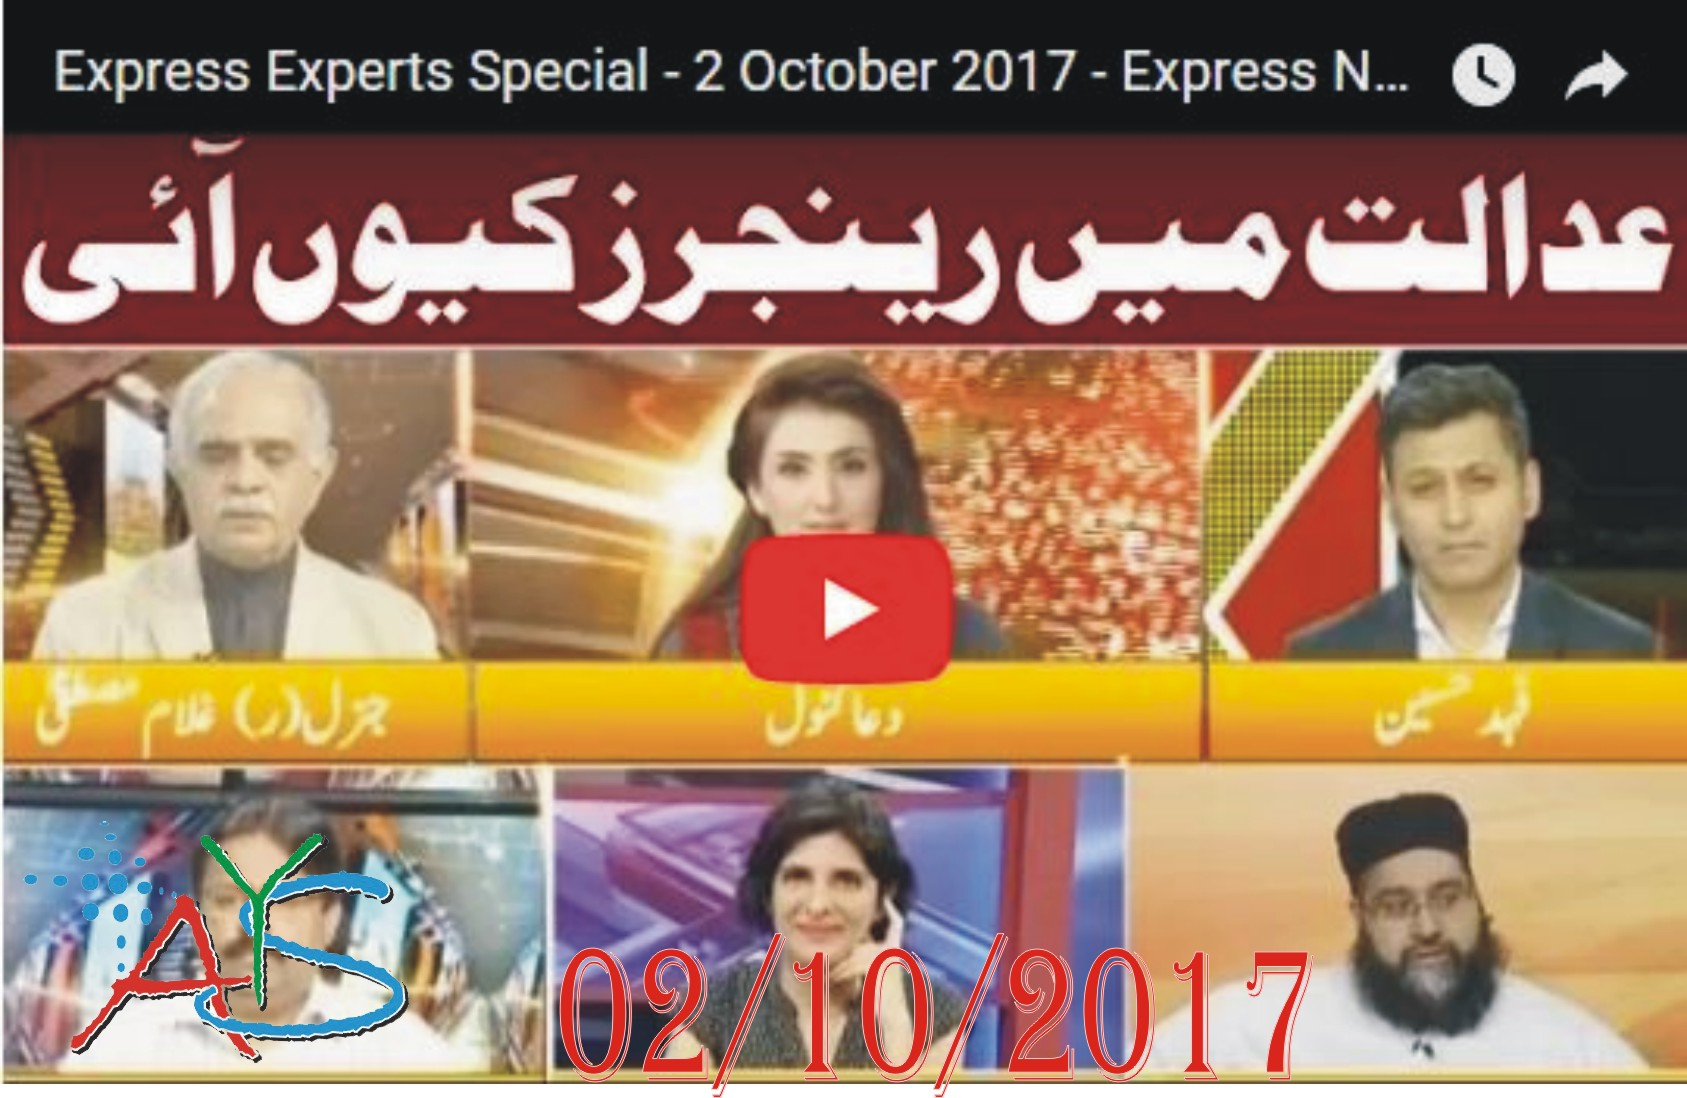 02 Oct 2017 - Express Experts - 2nd October 2017 - Election Reforms Bill cleared in National Assembly